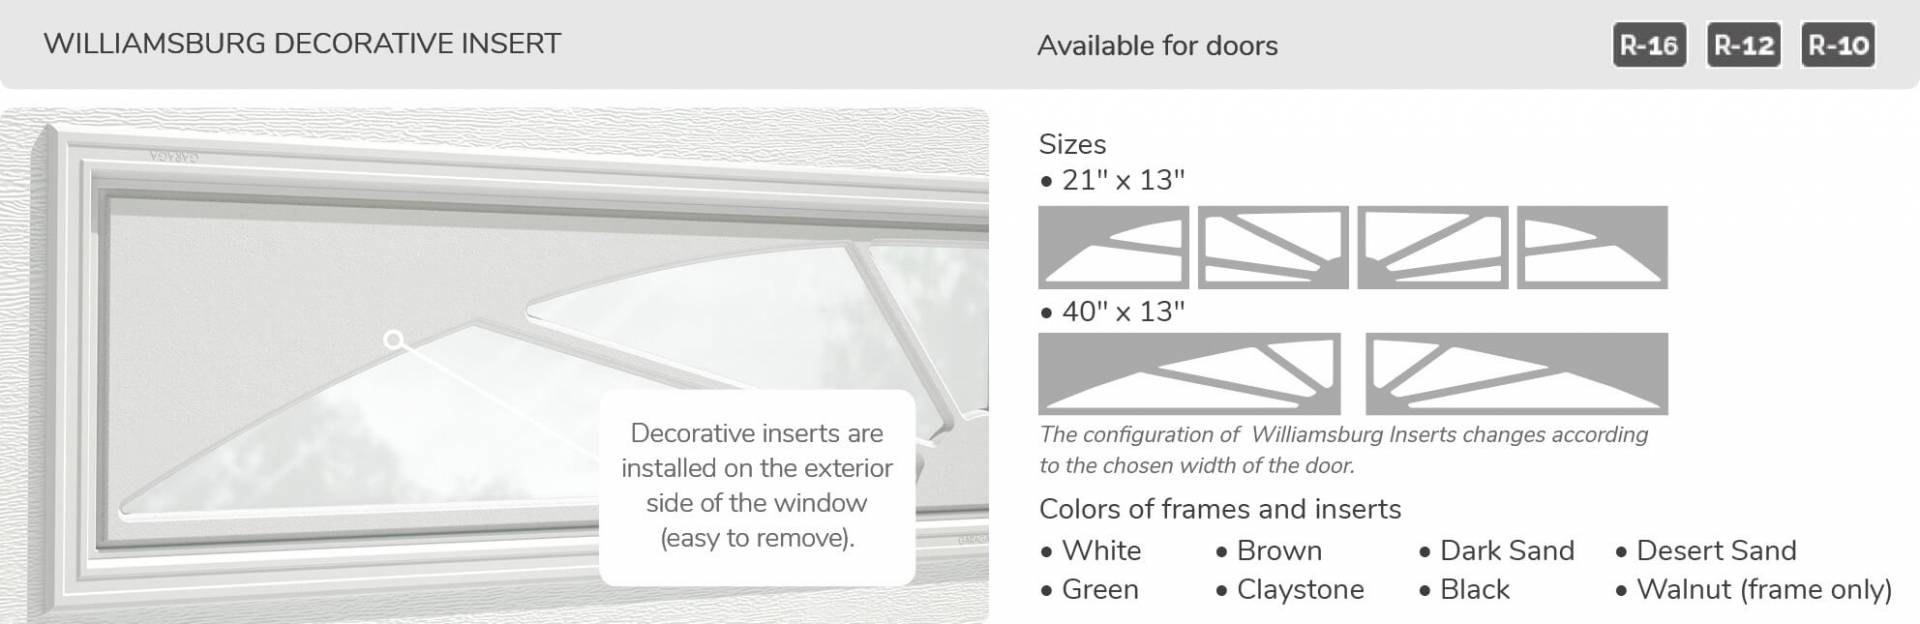 Williamsburg Decorative Insert, 21' x x13' and 40' x 13', available for doors R-16, R-12 and R-10